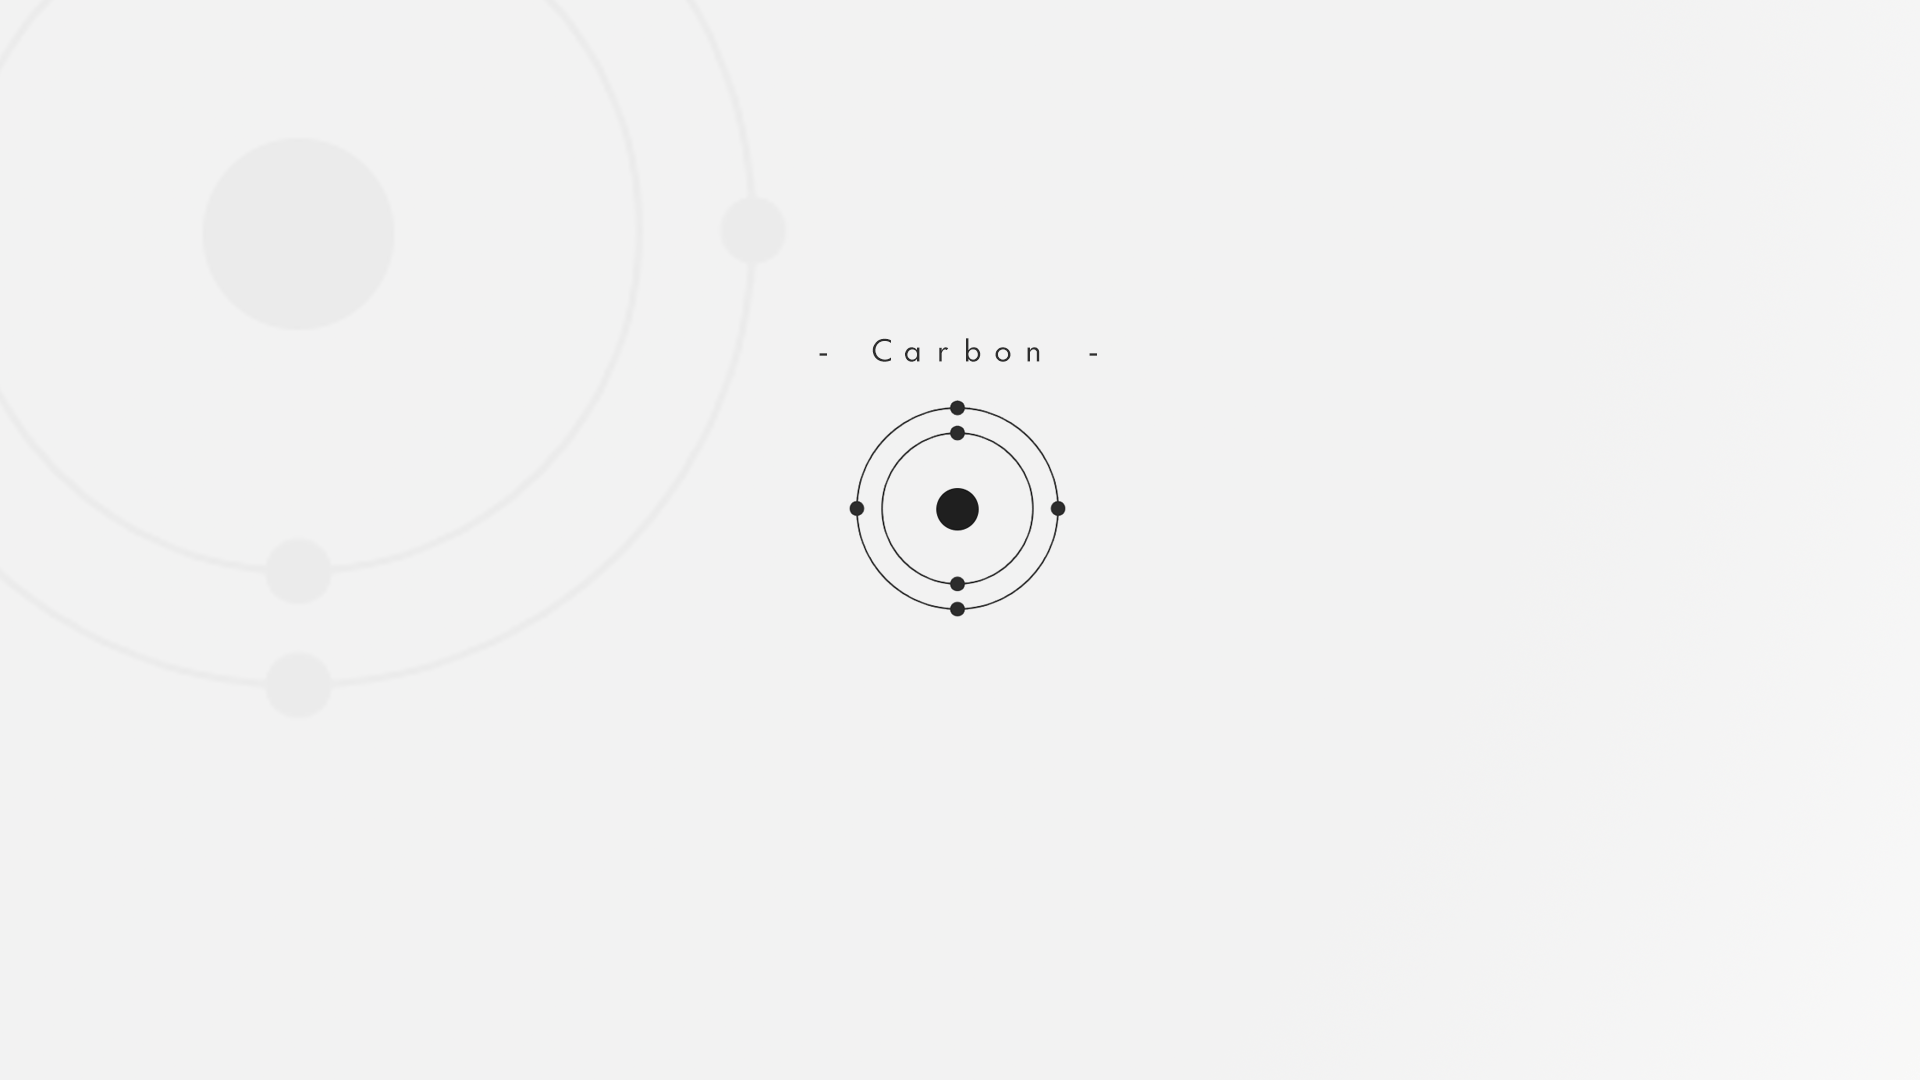 1920x1080 Minimalist Carbon wallpaper I quickly threw together : wallpapers